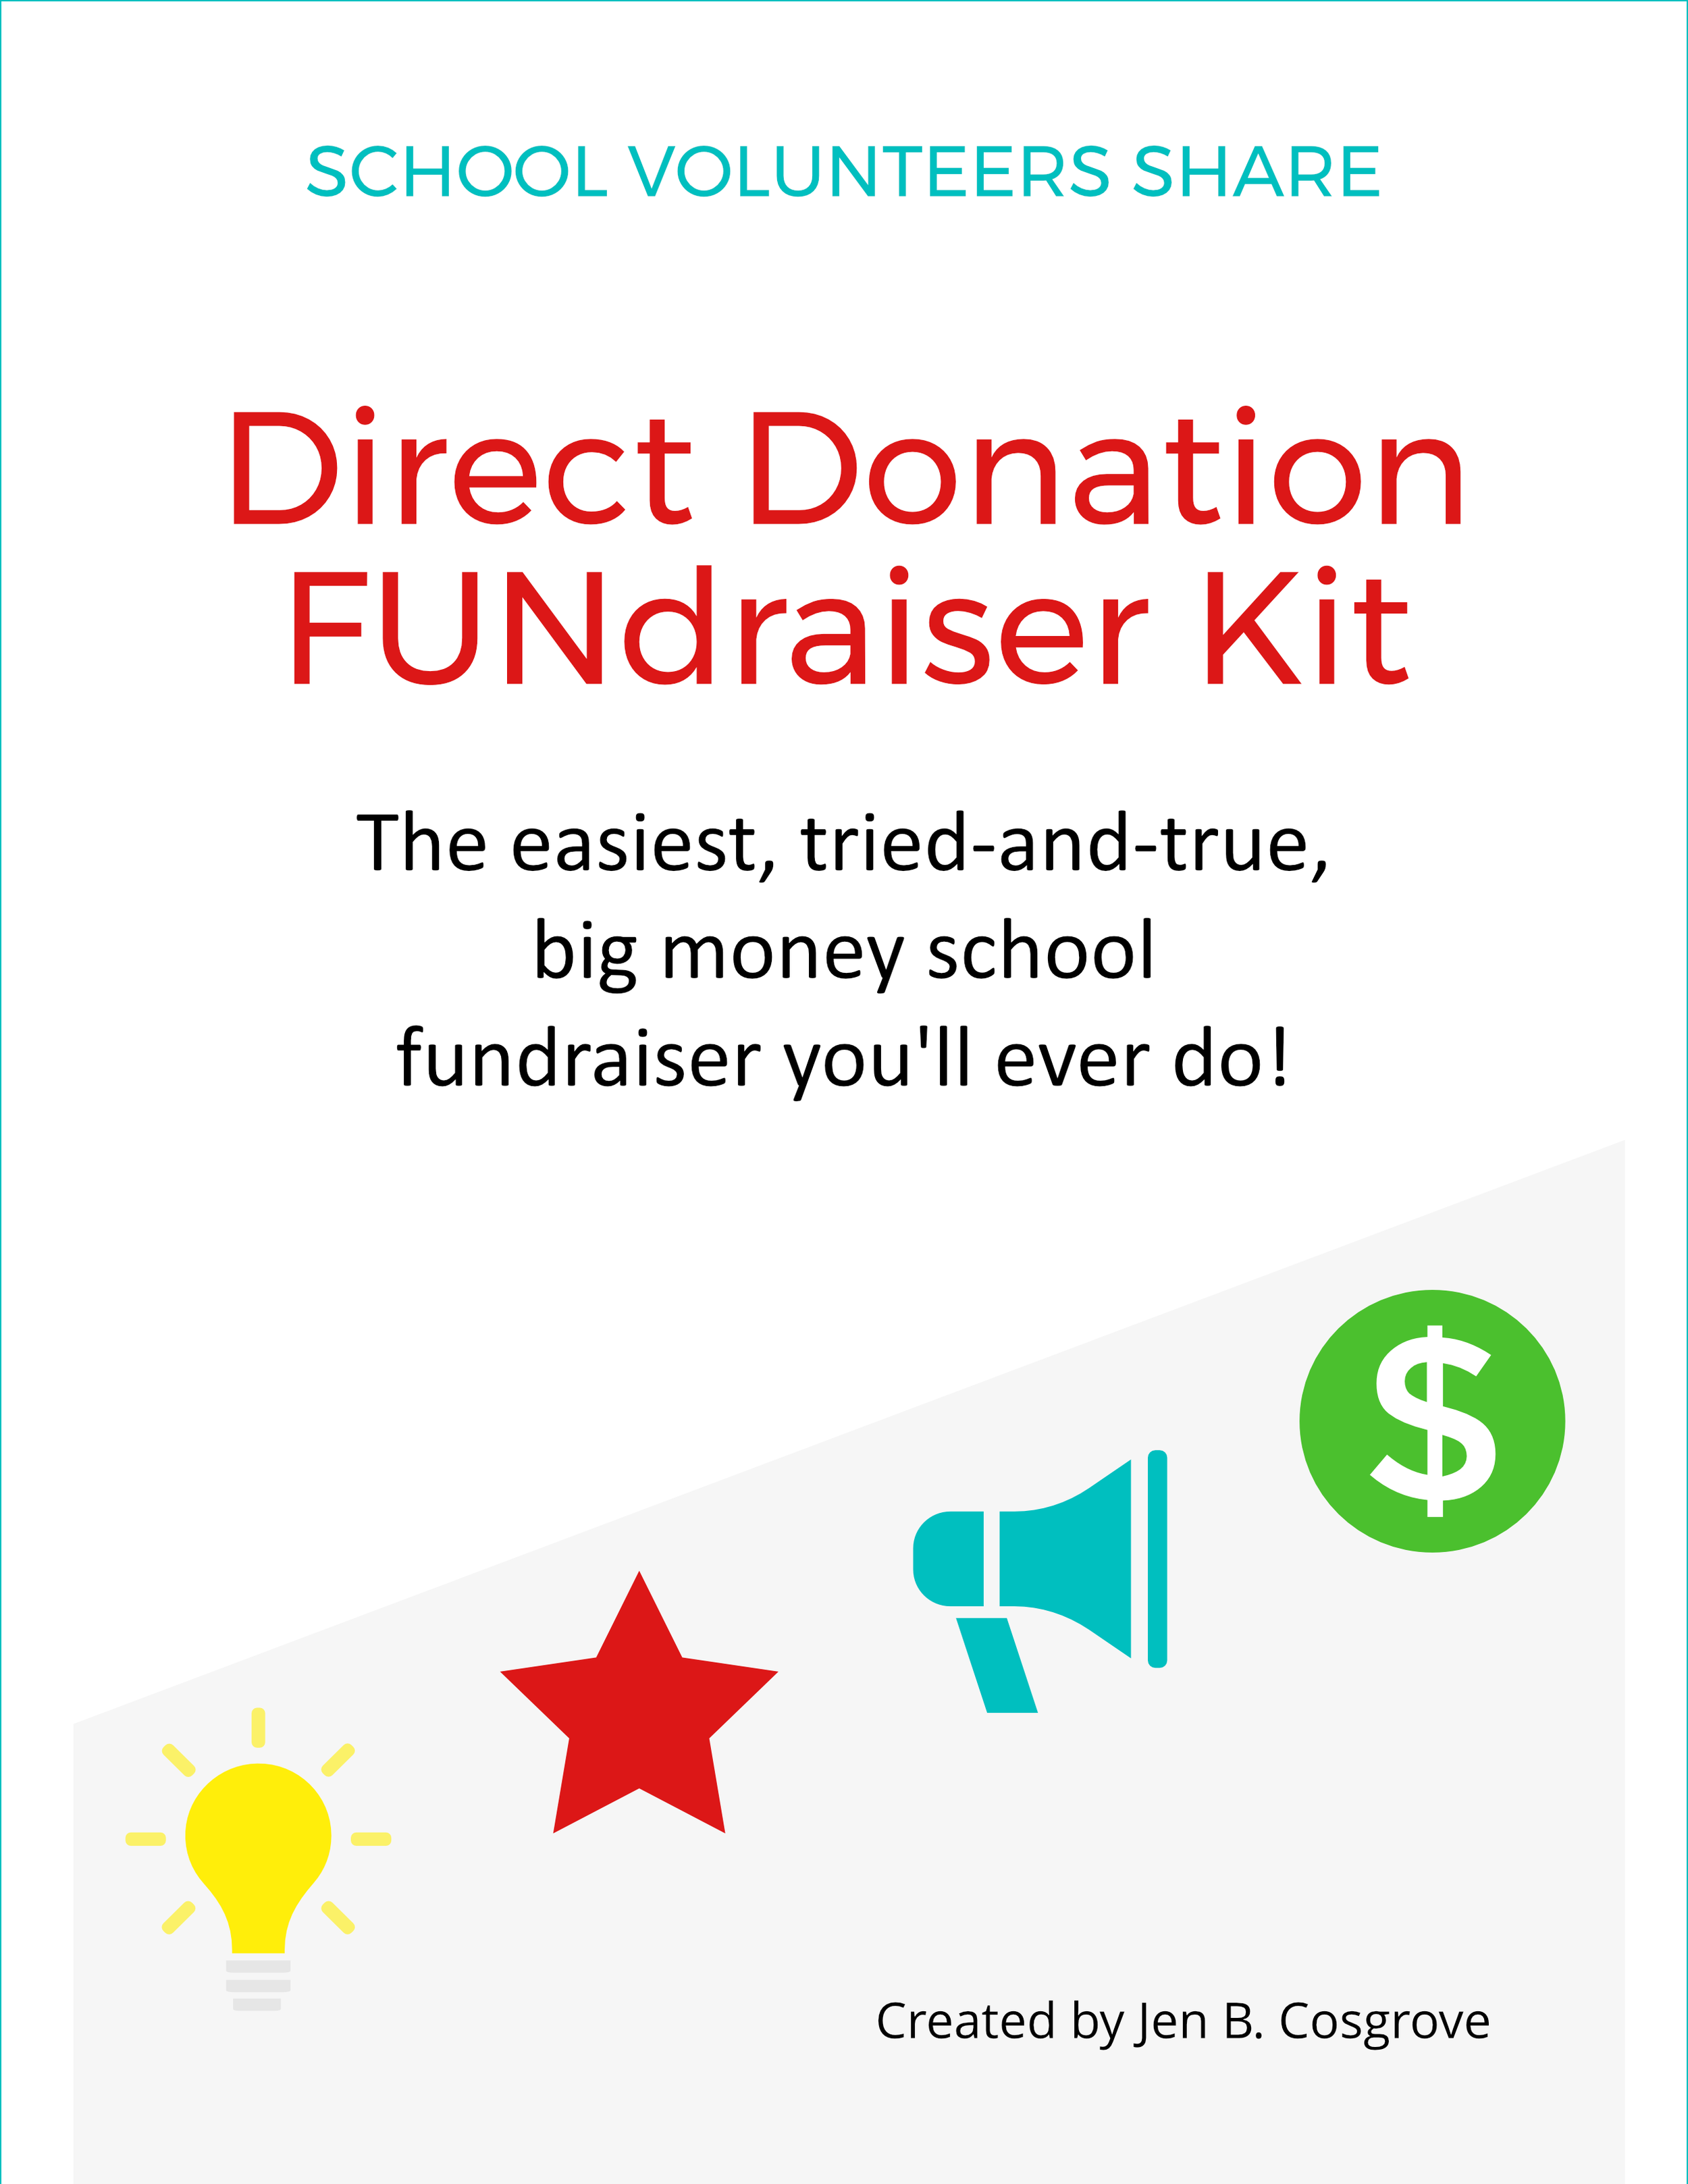 The easiest, tried-and-true big money school fundraiser you'll ever do! Everything you need to set up and launch a successful, hassle-free direct donation school fundraiser. With this kit, you'll start with a proven, high-profit PTO fundraiser and add exciting incentives and smart marketing to max out family participation and donations. Get ready to raise the money you need for your school, without the hassle and selling of traditional fundraisers!